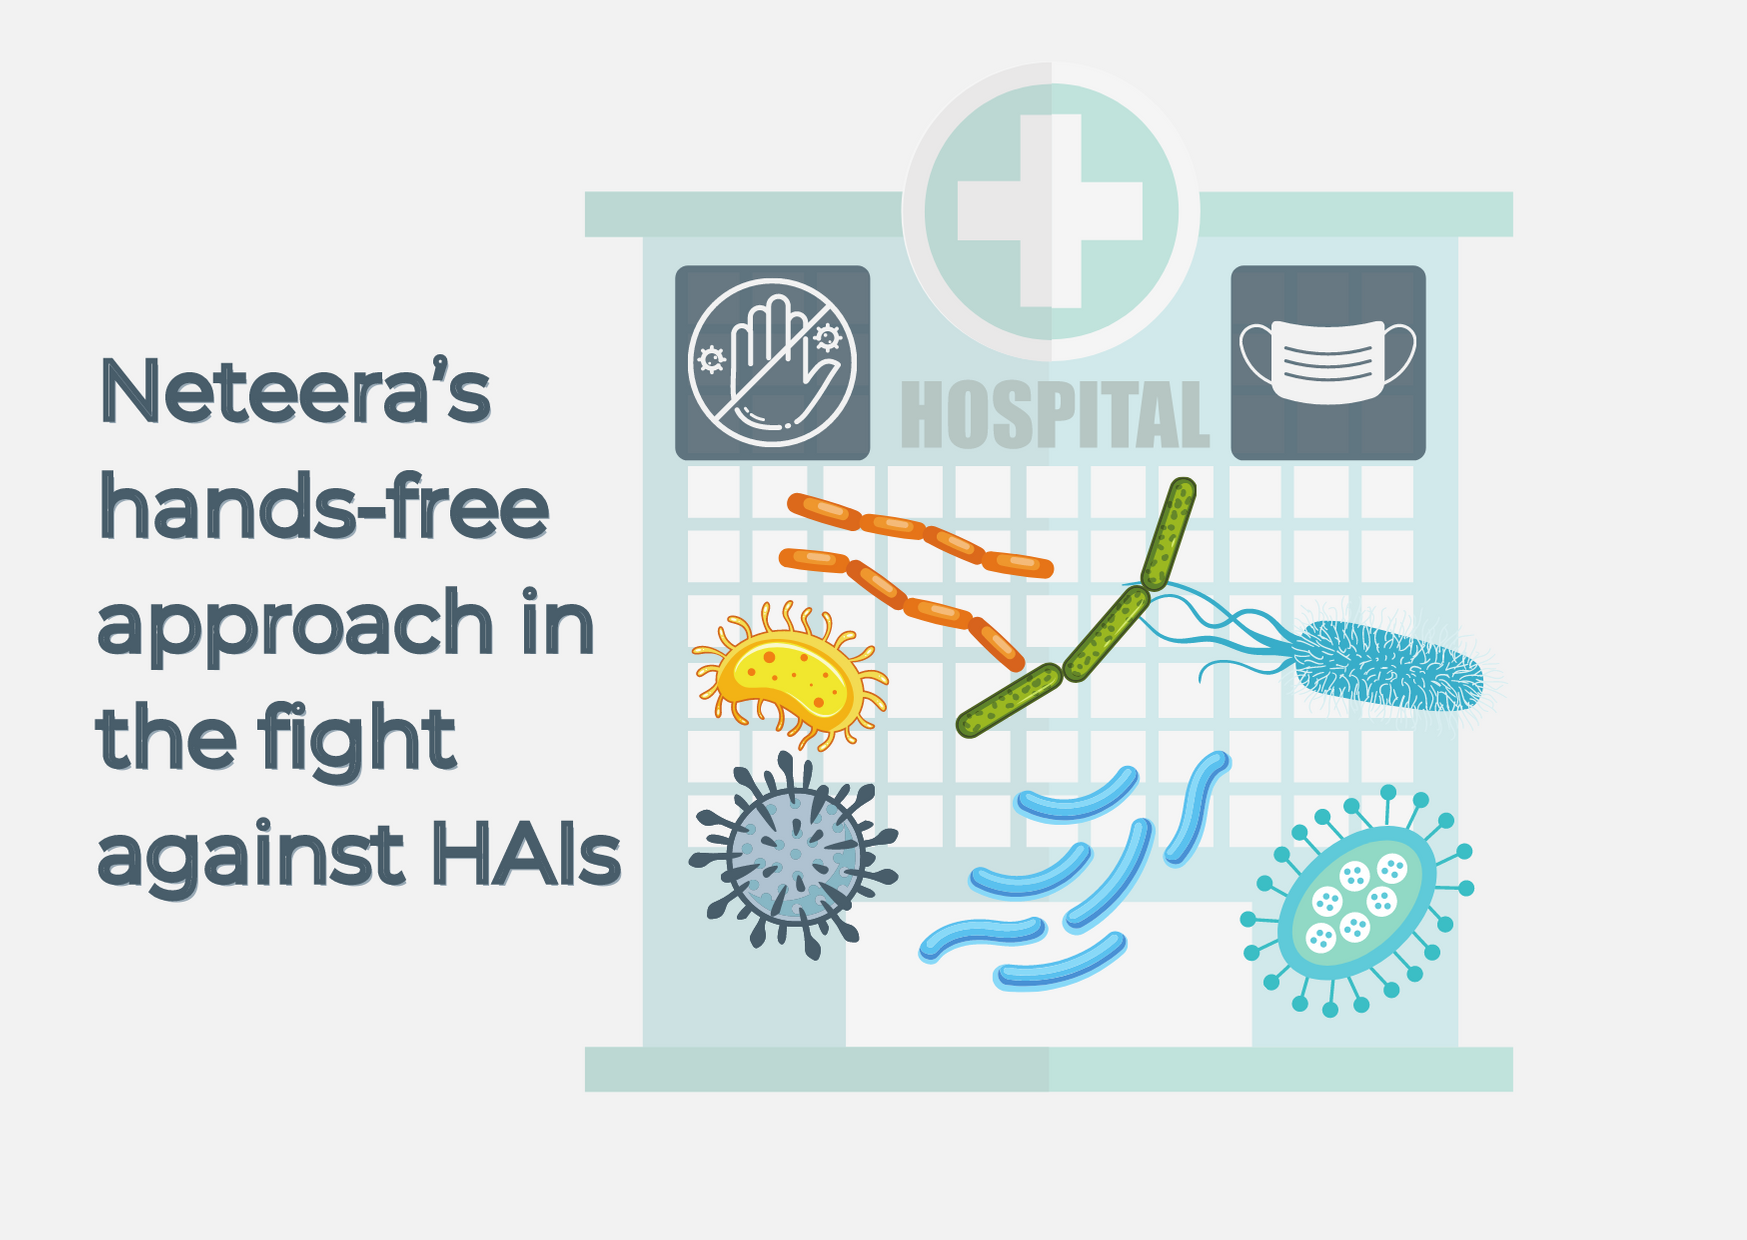 Neteera's hands-free approach in the fight against healthcare-associated infections